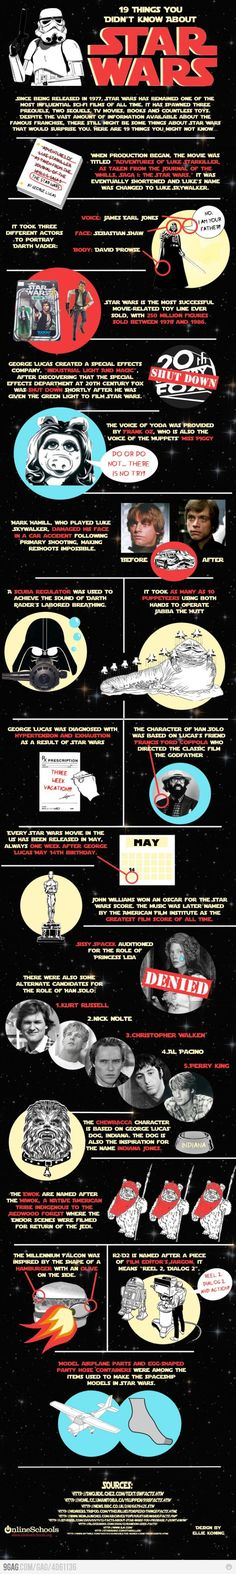 19 Things You Didn't Know About Star Wars and 1 big typo.